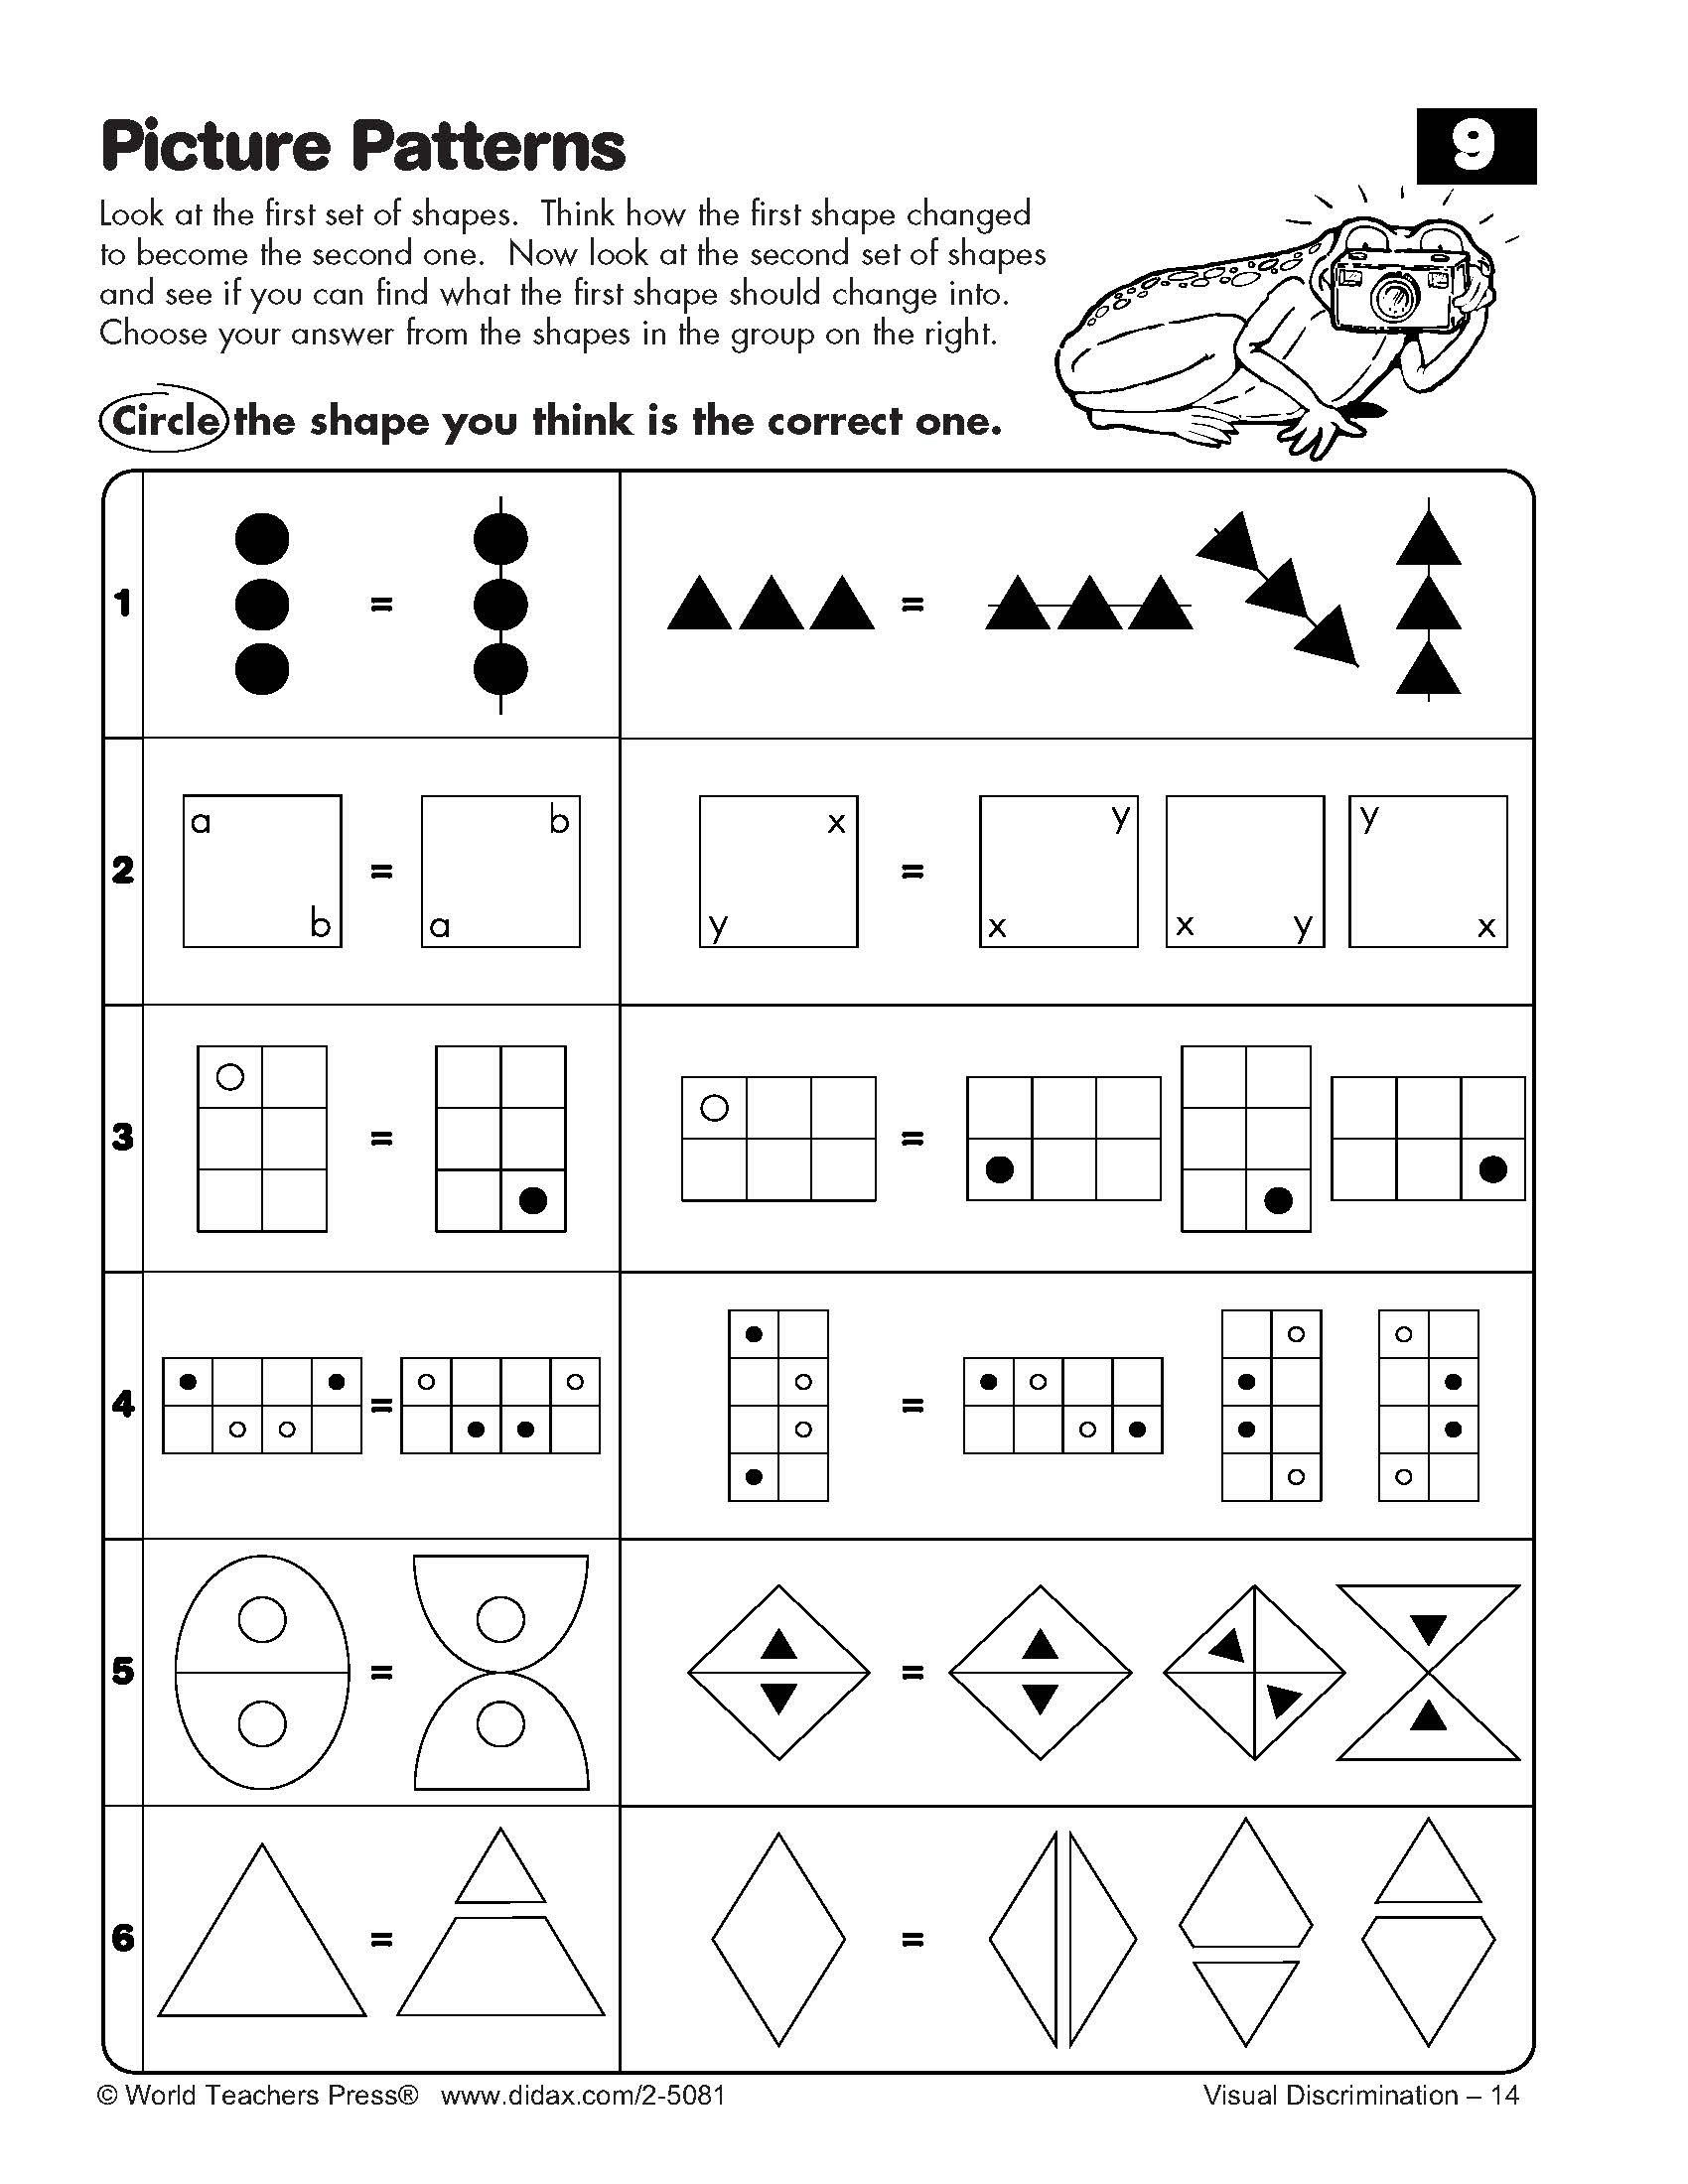 Visual Discrimination Worksheets for Adults Visual Discrimination Exploring and solving Picture Patterns